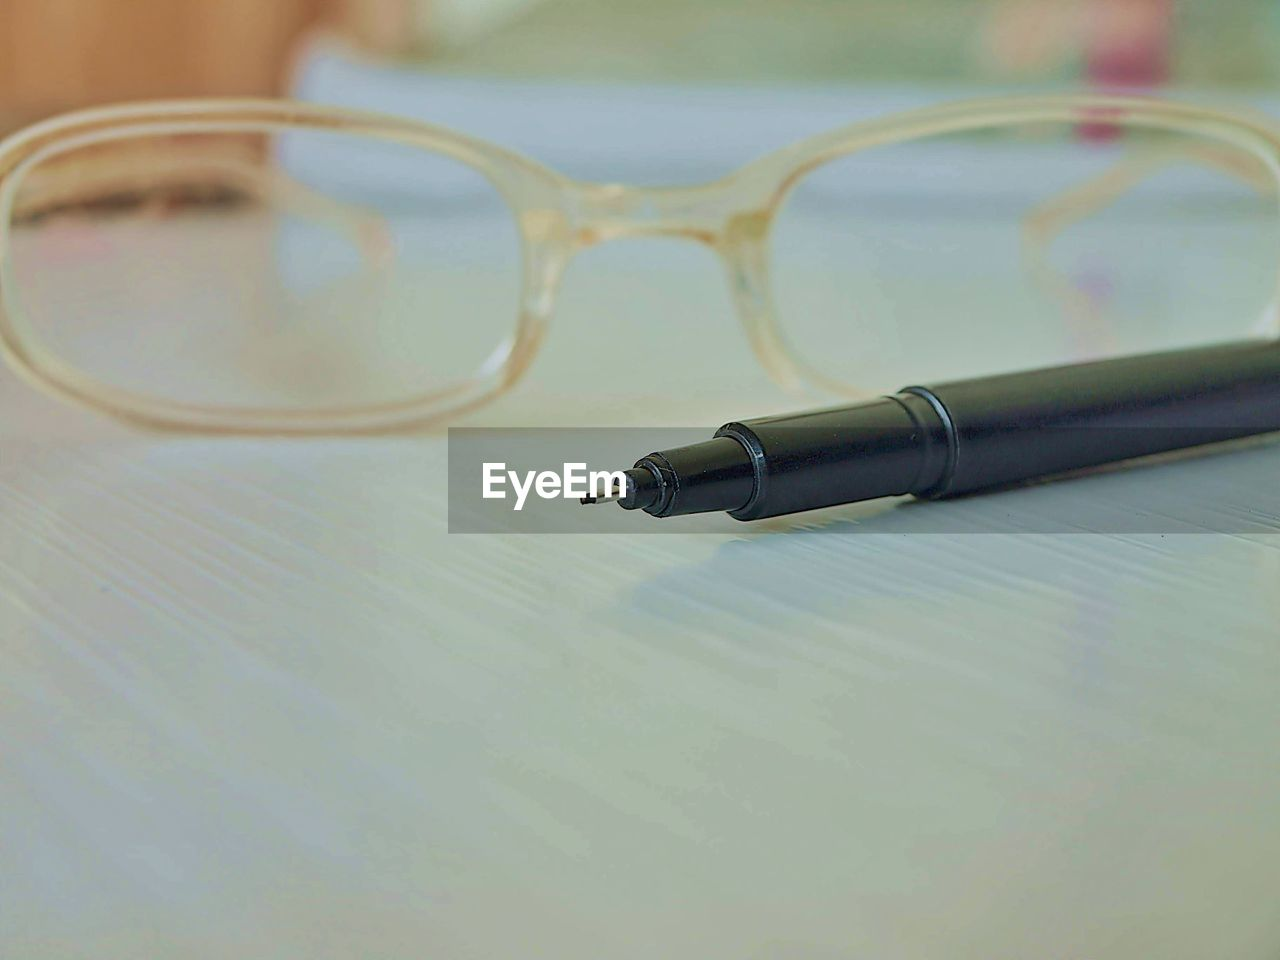 still life, pen, close-up, table, indoors, writing instrument, glasses, glass - material, selective focus, no people, eyeglasses, paper, transparent, focus on foreground, black color, single object, page, ballpoint pen, communication, fountain pen, surface level, personal accessory